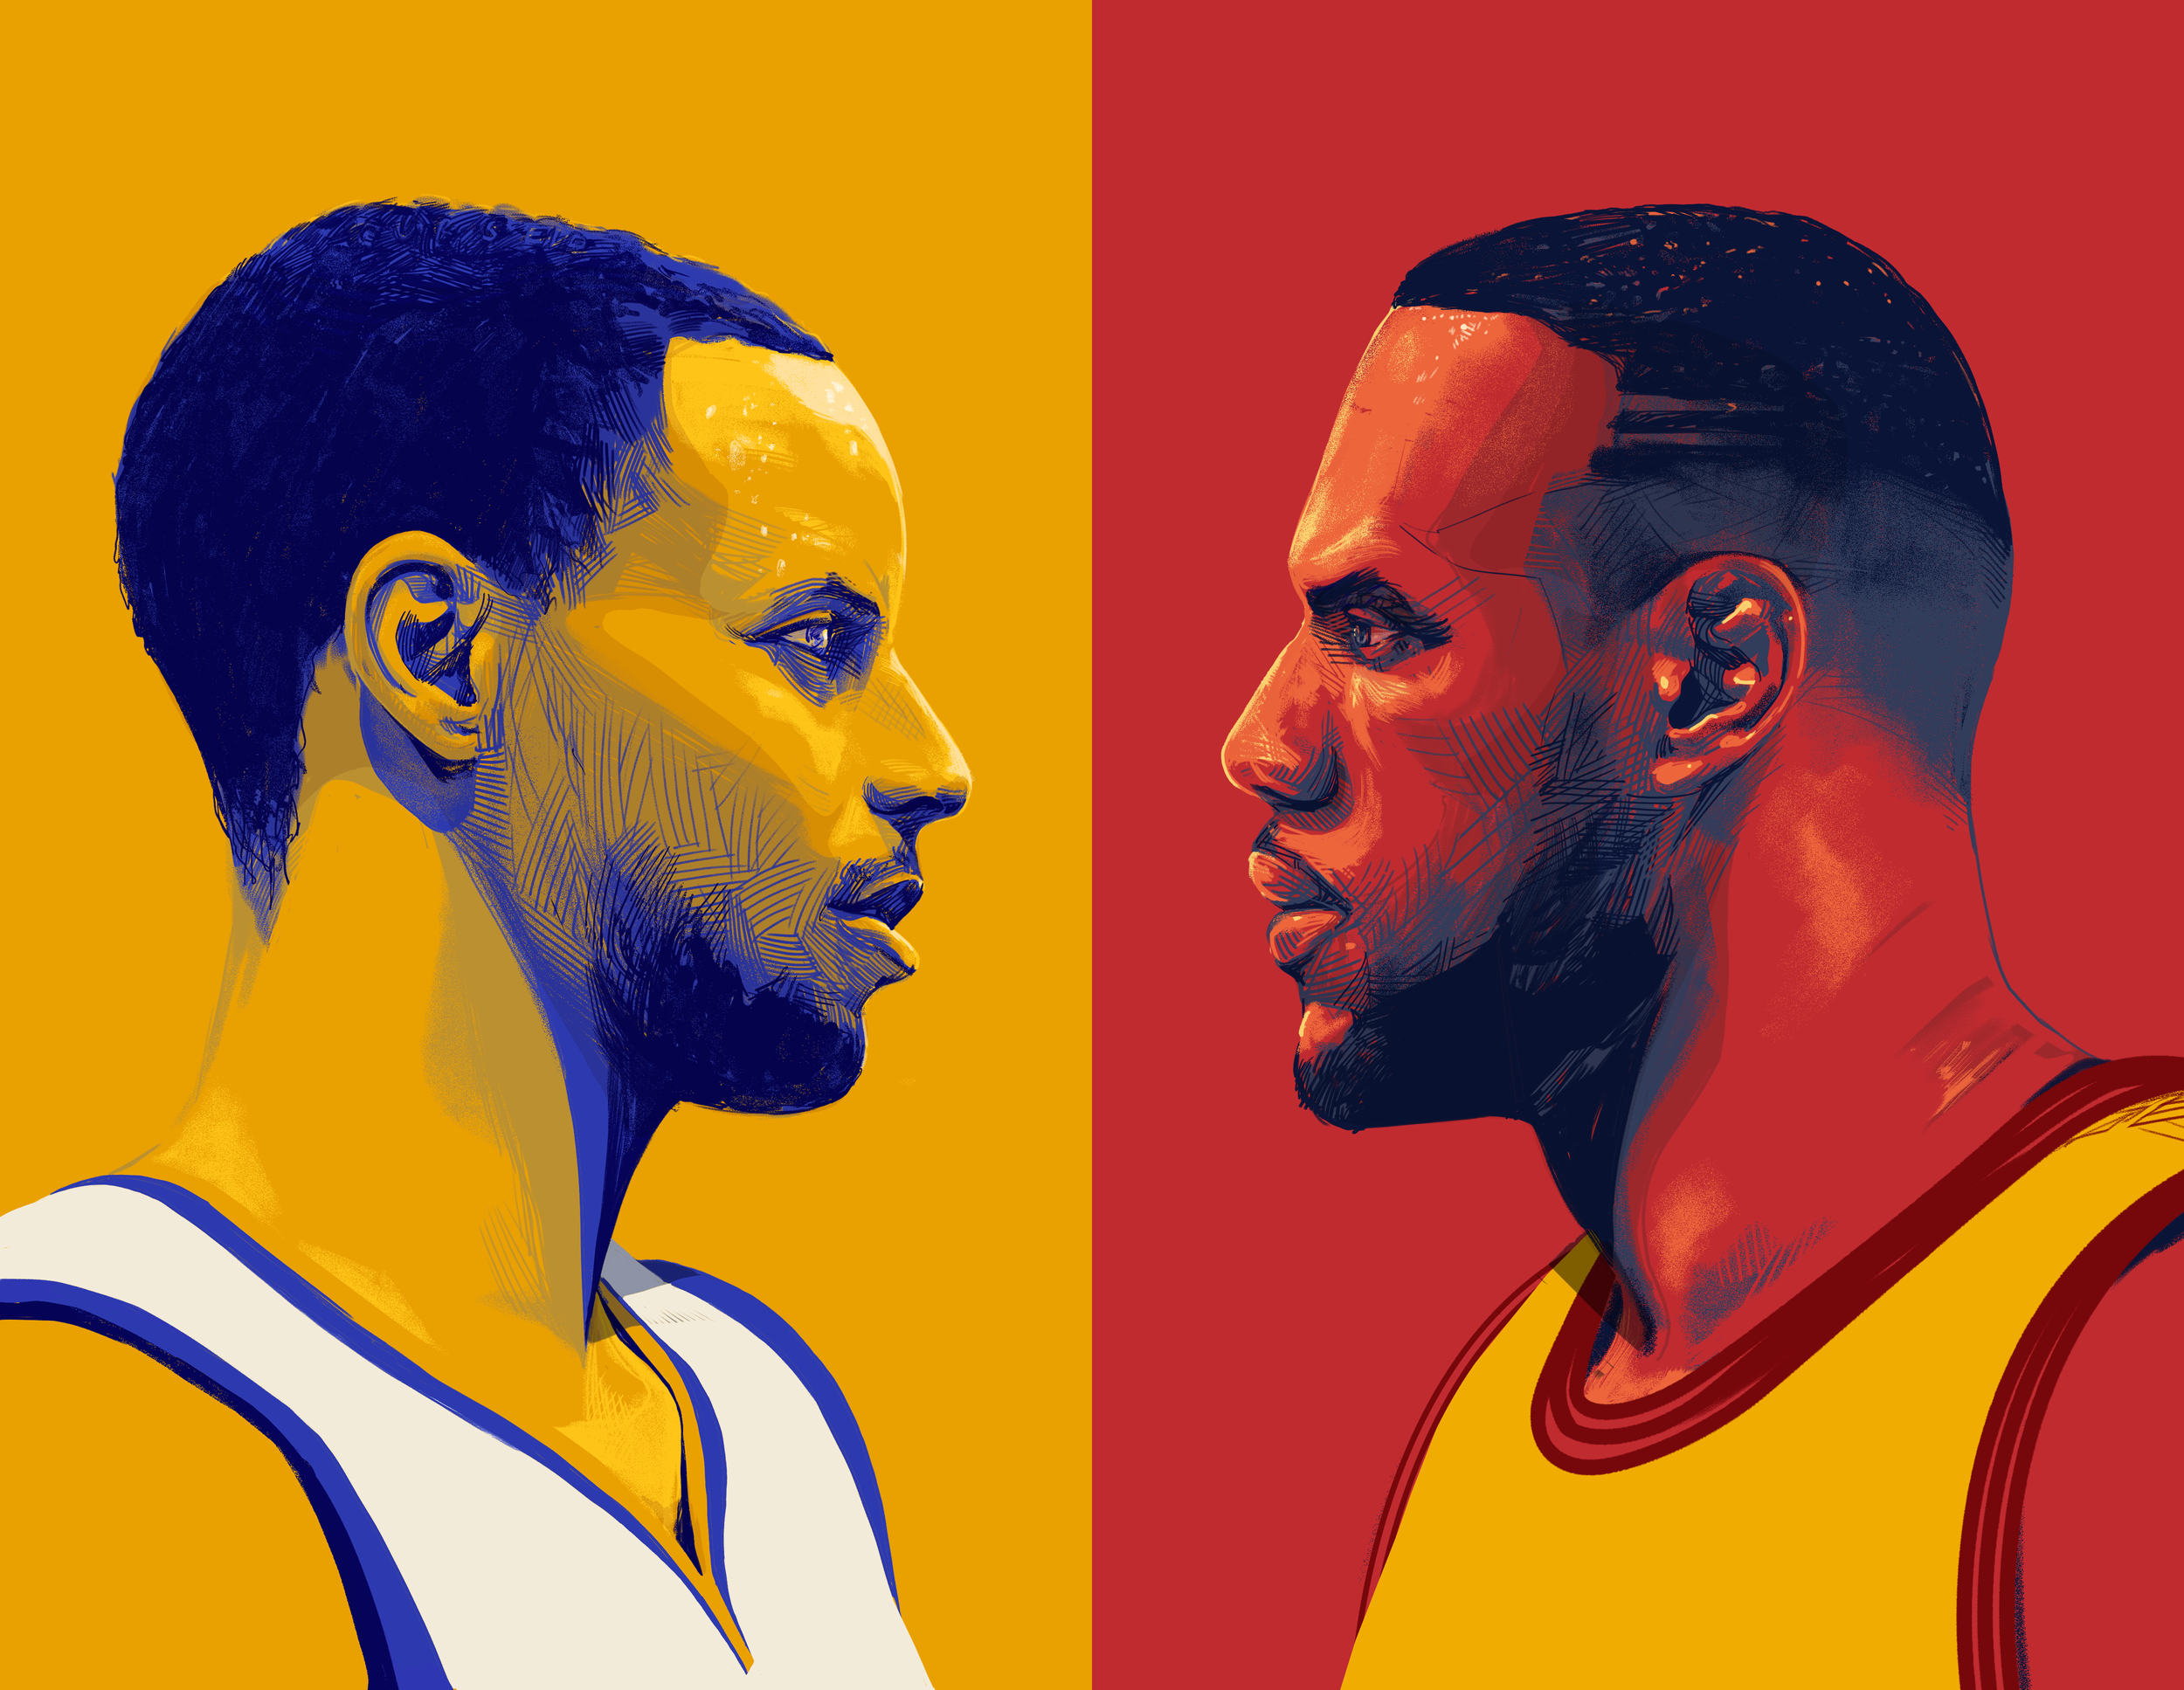 NBA FINALS - SportsCenter/ ESPNArtwork for ESPN's coverage of the 2015 NBA Finals. Before Kyrie Irving was traded, before Kevin Durant joined a 73-win team, before the Warriors blew a 3-1 lead.